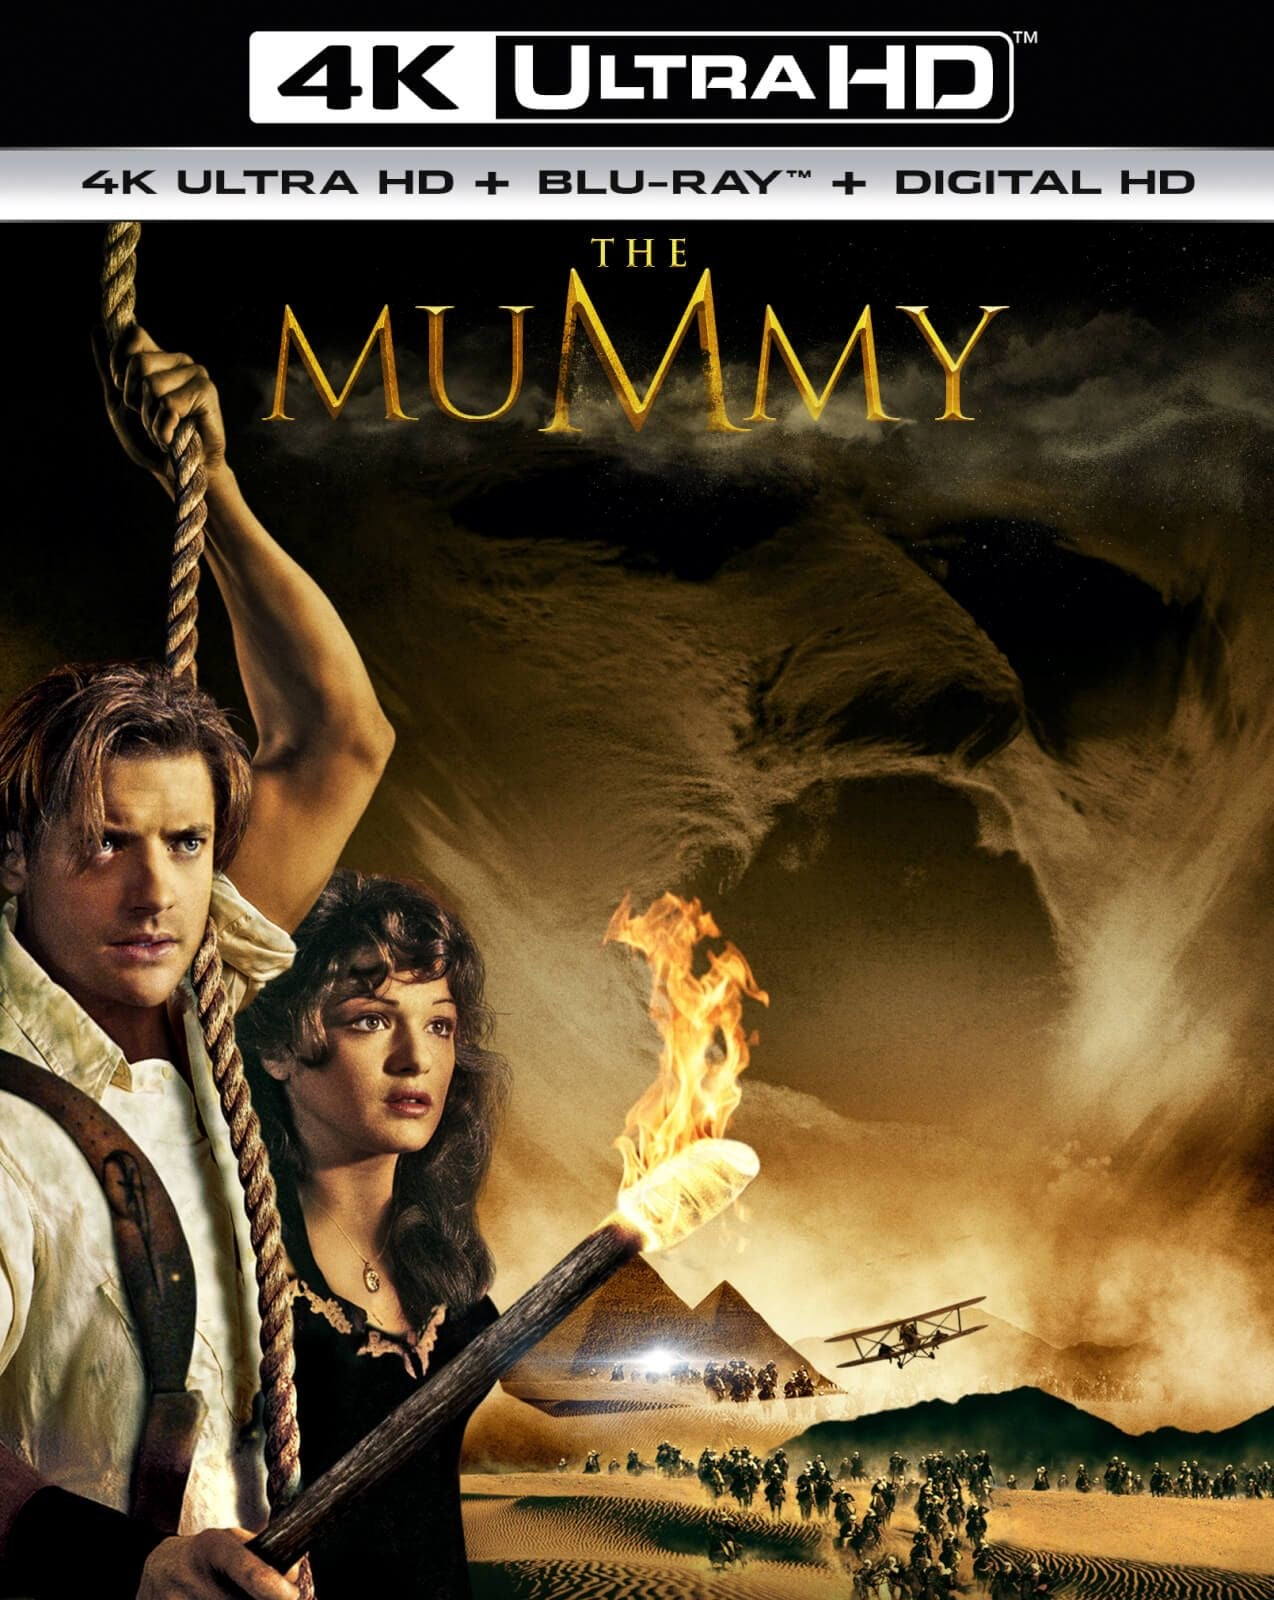 The Mummy (1999) Vudu or Movies Anywhere 4K redemption only